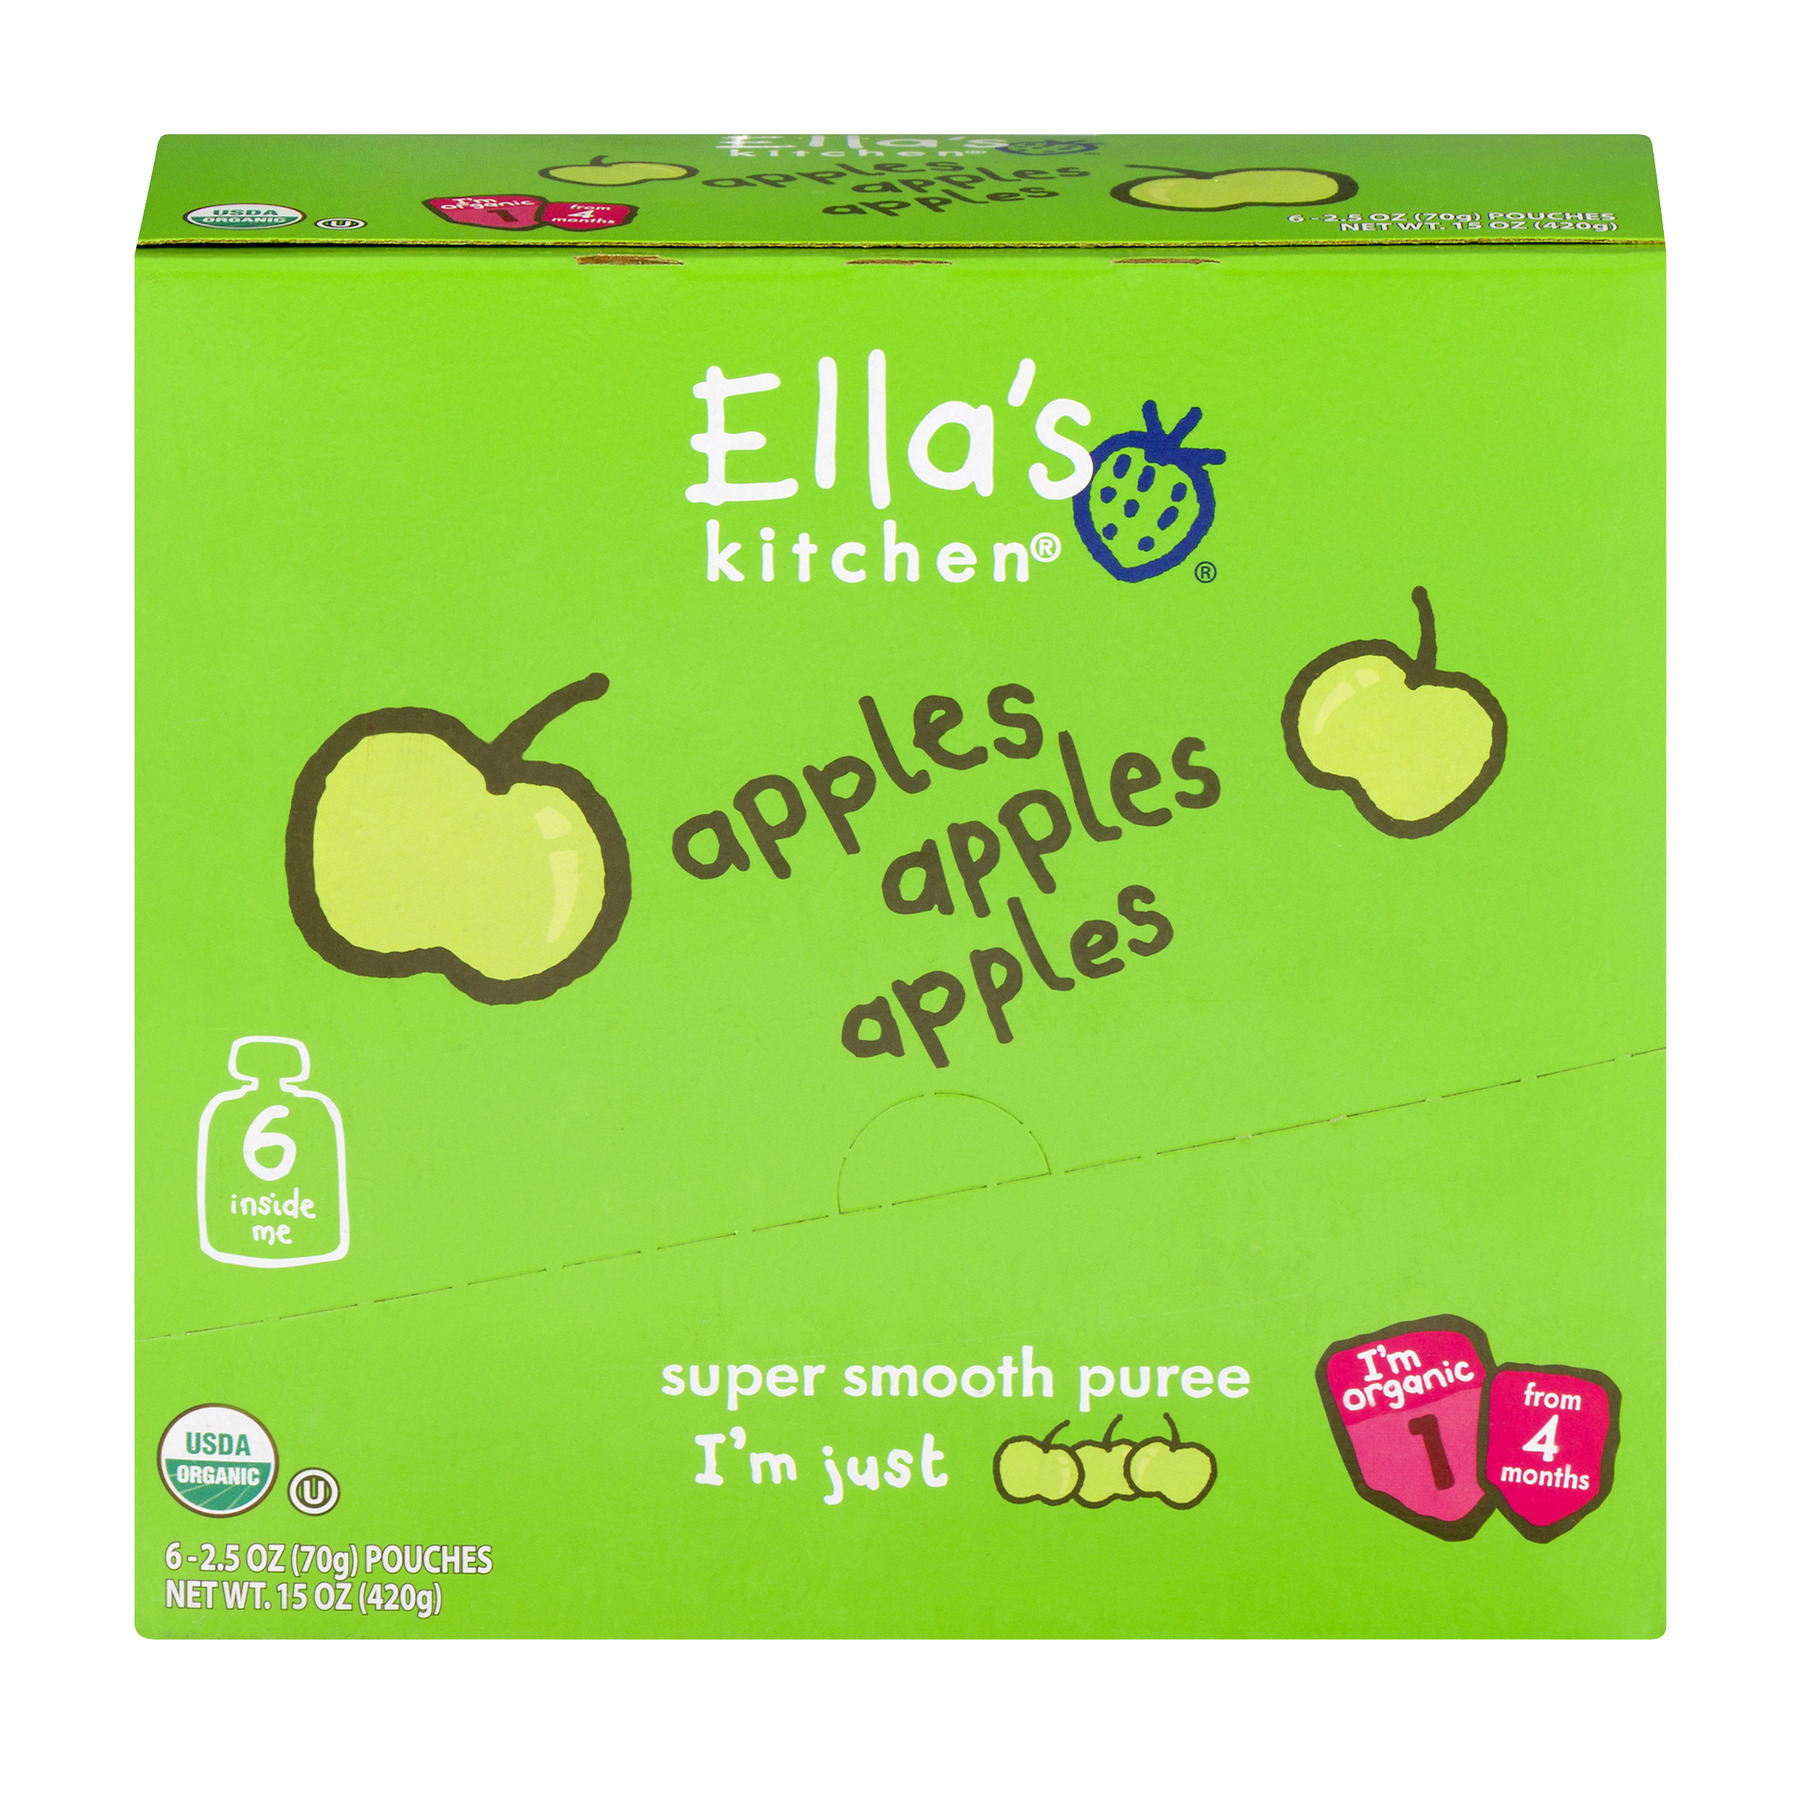 Ella's Kitchen Organic Baby Food Apples Apples Apples Super Smooth Puree Organic 6 Pack